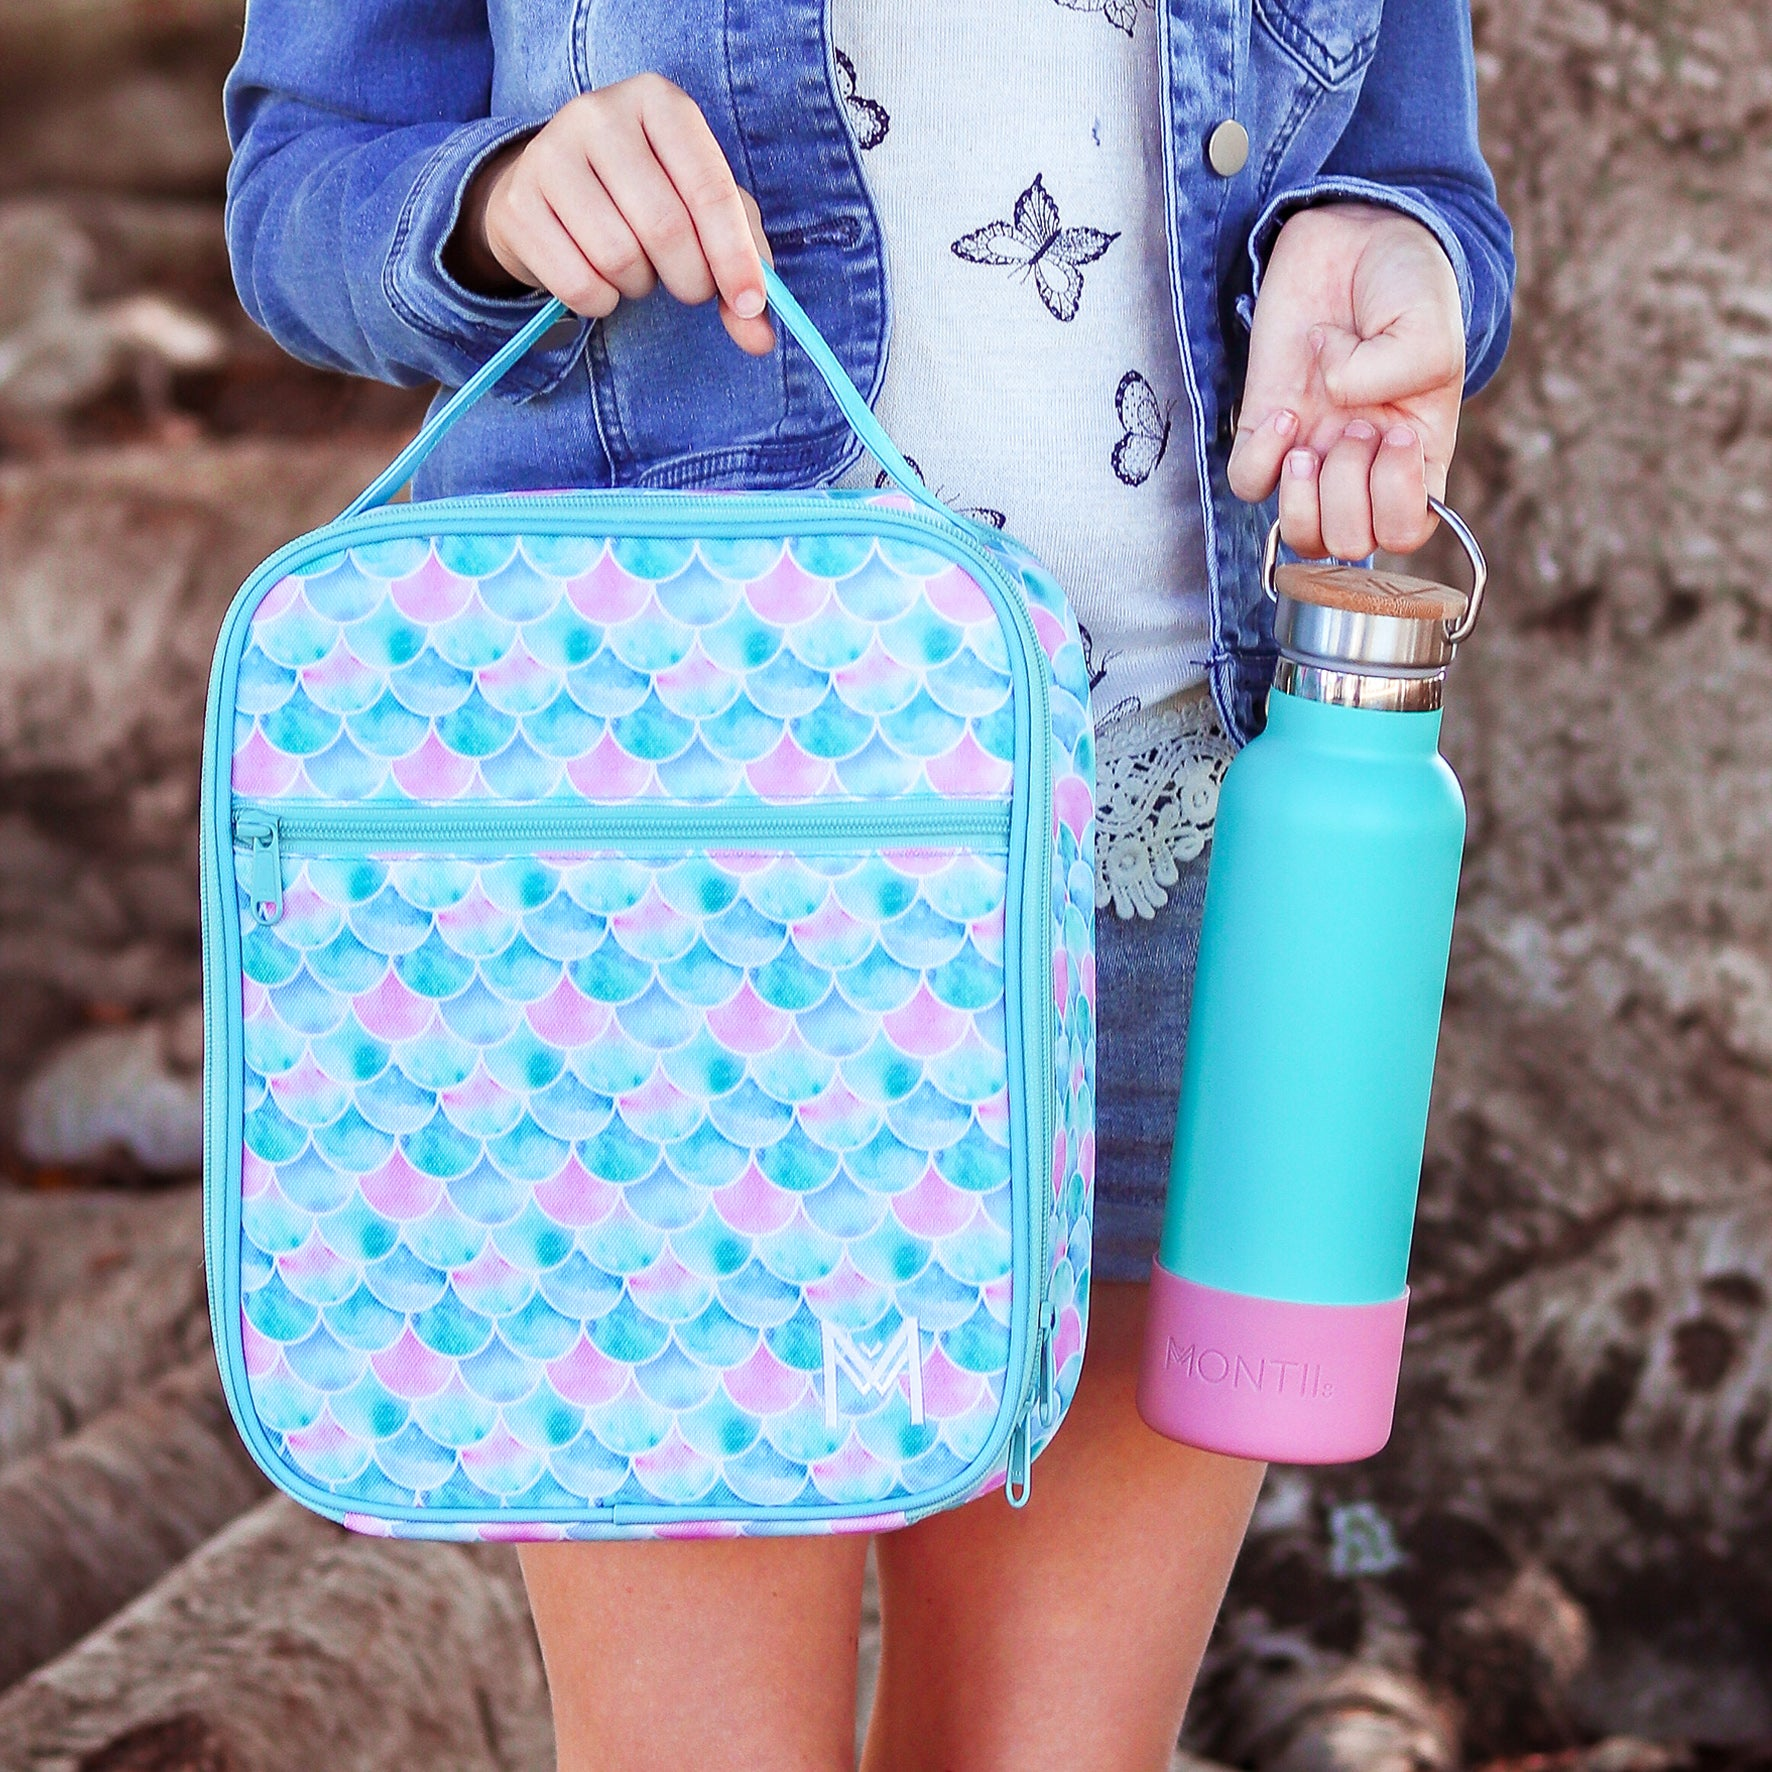 MontiiCo Insulated Lunch Bag - Mermaid-Lunchbox Mini